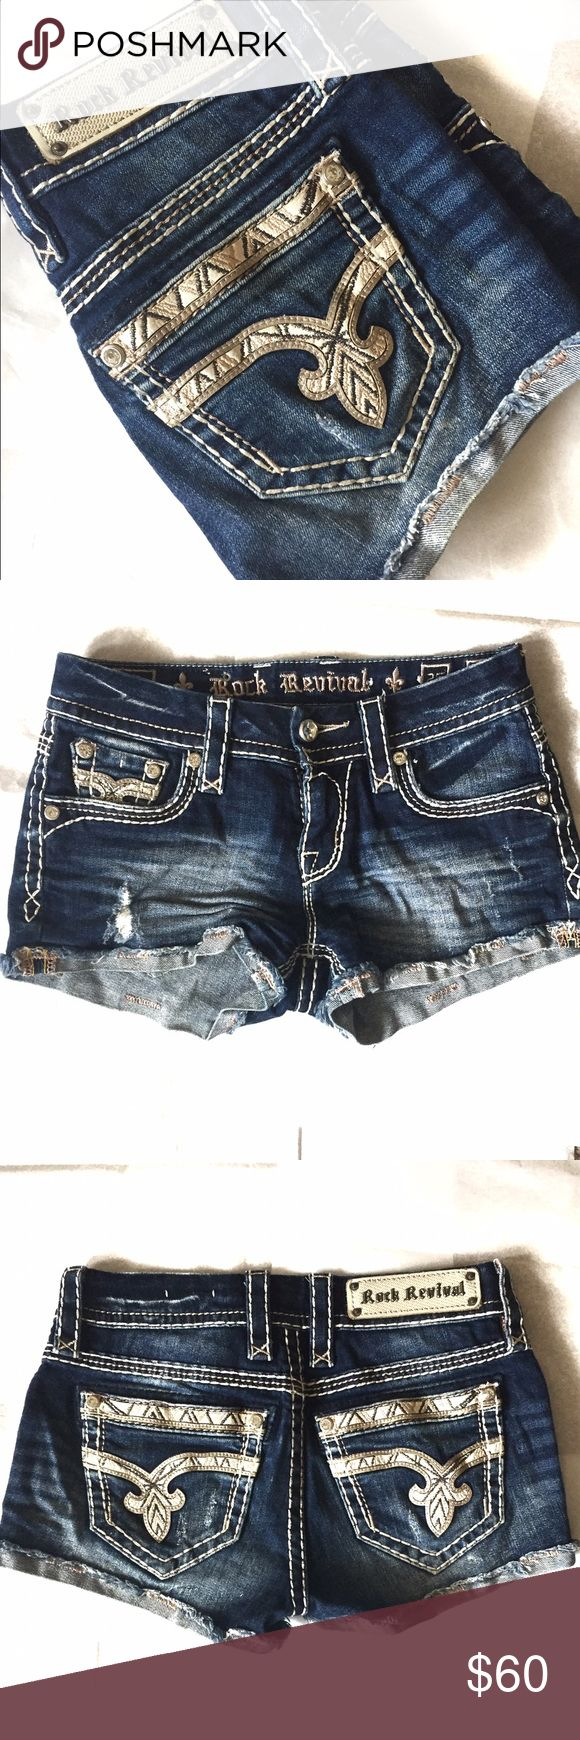 "Rock Revival Nancy Shorts NWOT * Low rise * 2.5"" frayed Stretch shorts * Rhinestone embellishment on pocket corner * 98% Cotton 2% elastin NWOT Rock Revival Shorts Jean Shorts"